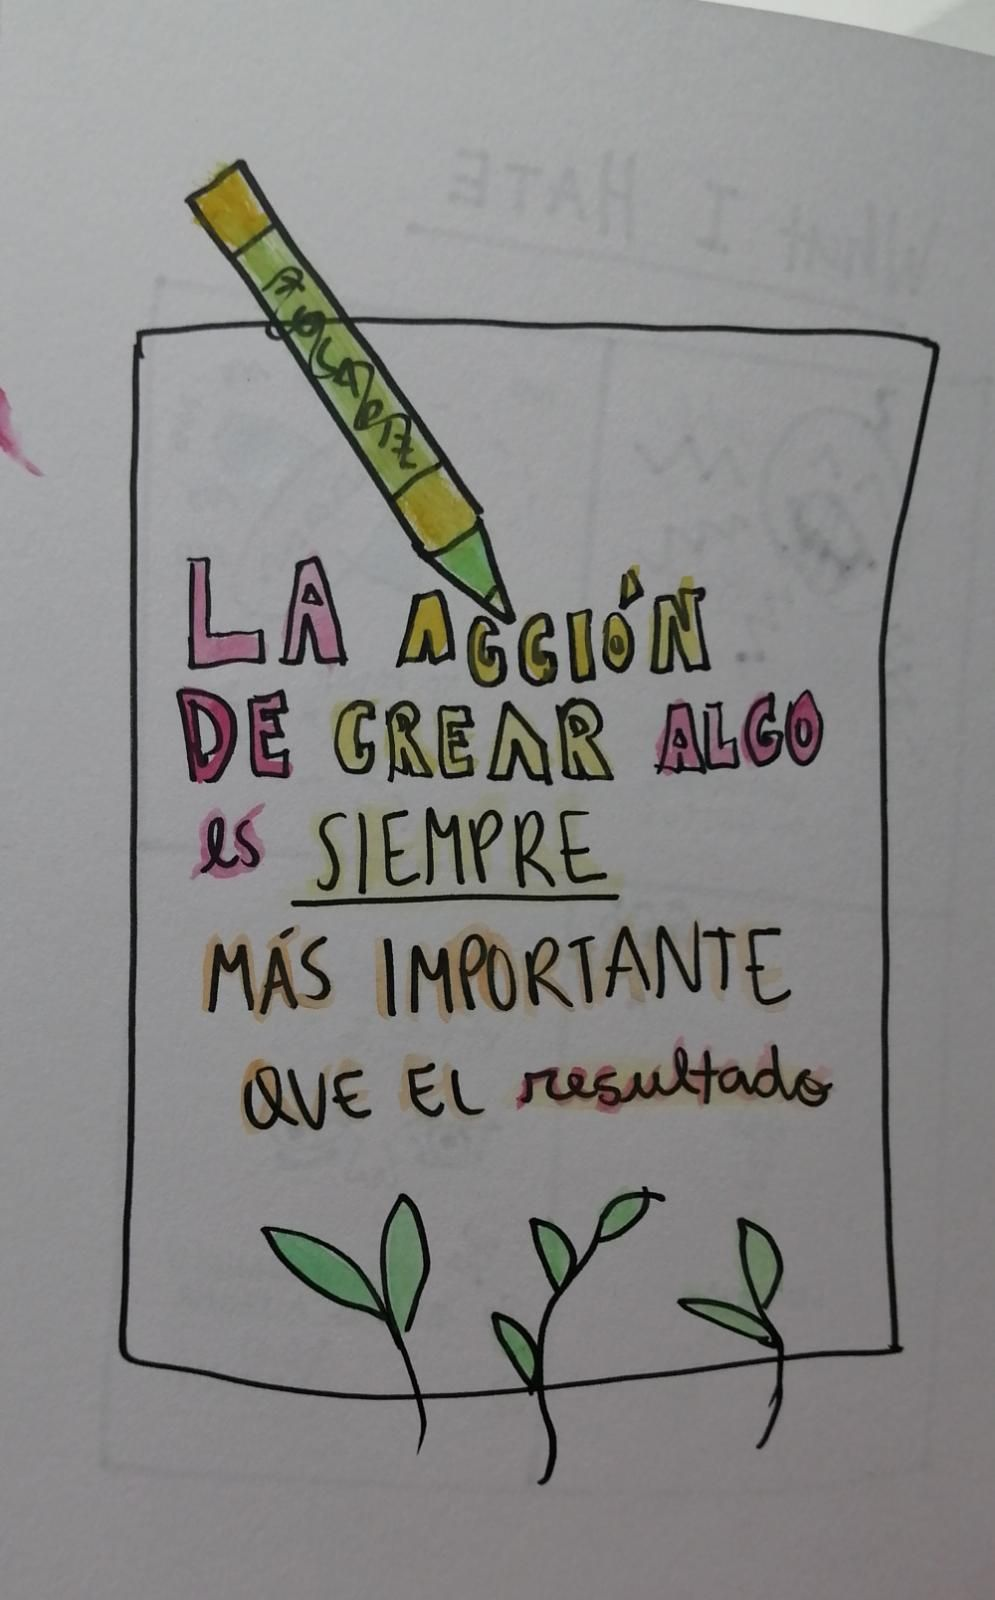 Drawing my feelings in spanish - image 3 - student project